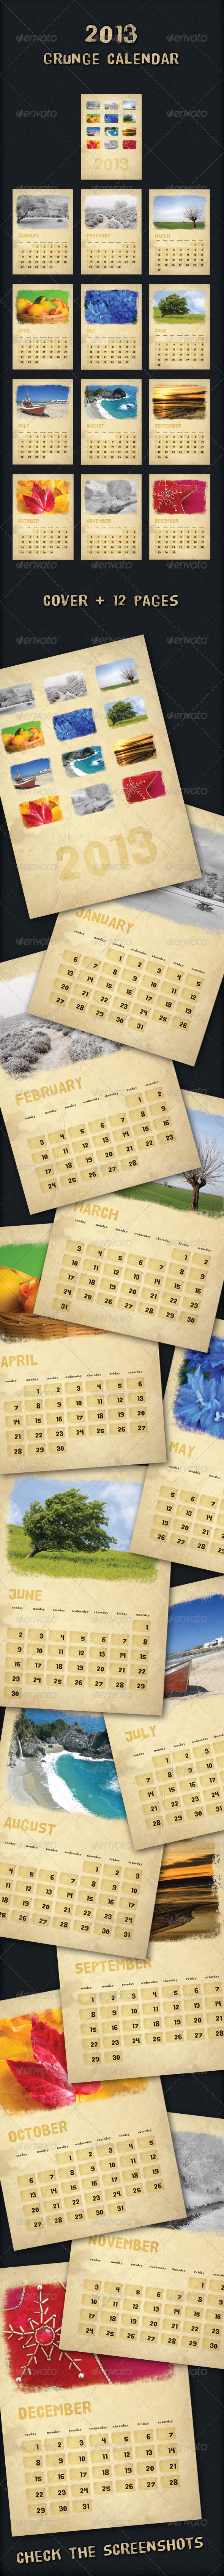 2012 Grunge Calendar - Calendars Stationery